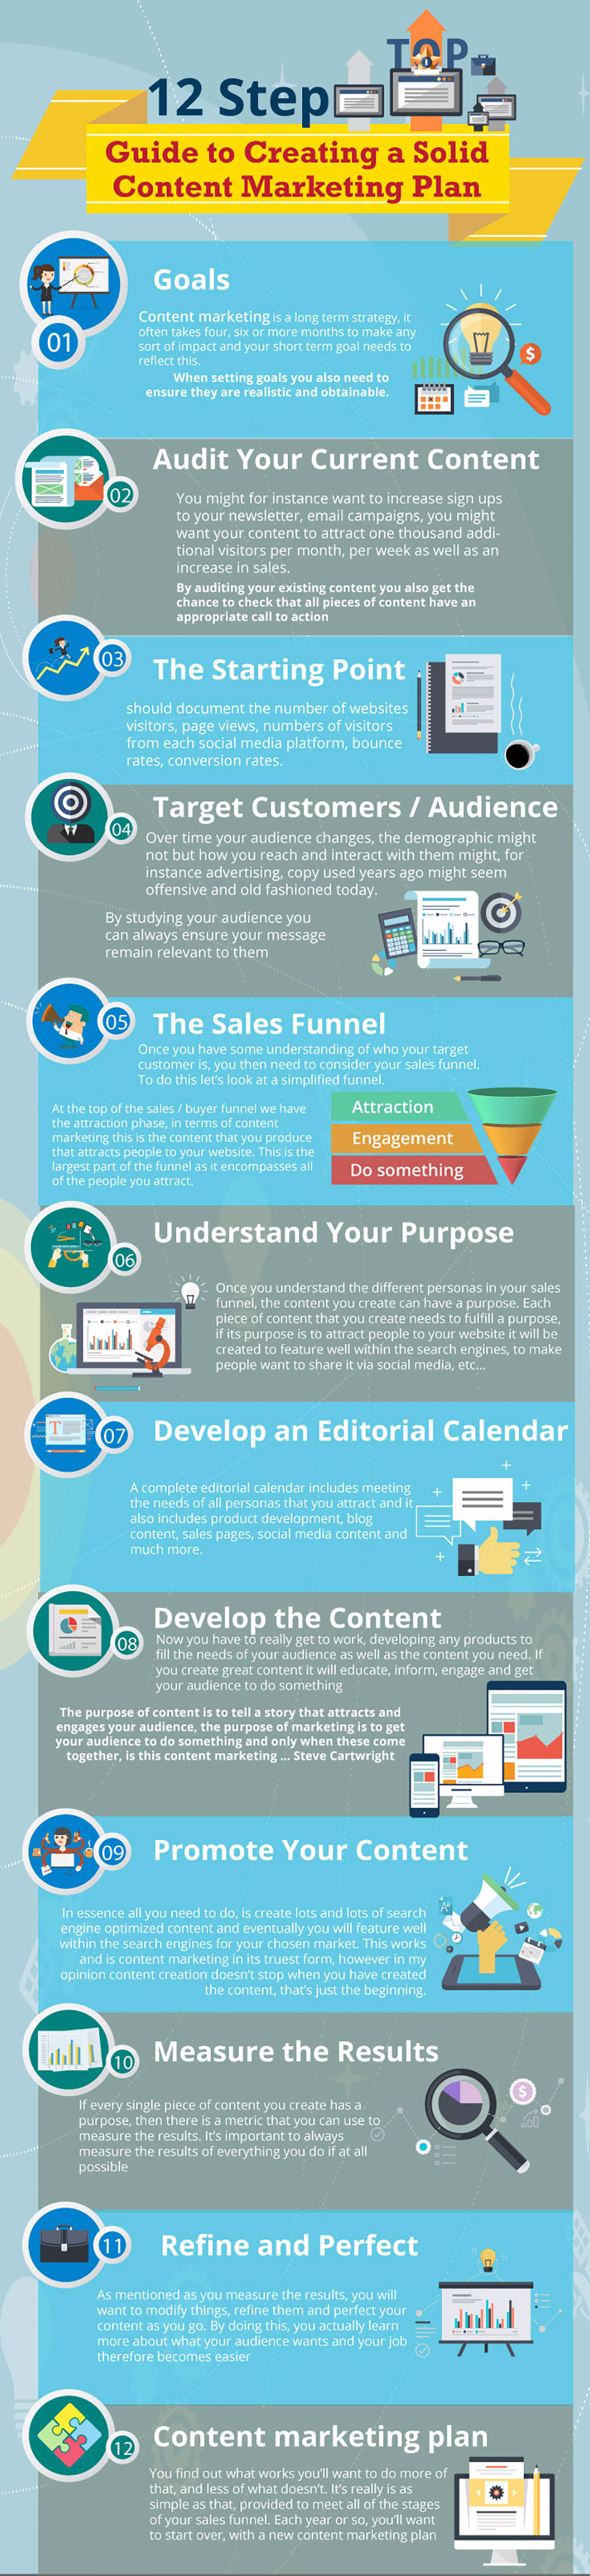 Content Marketing Plan Infographic